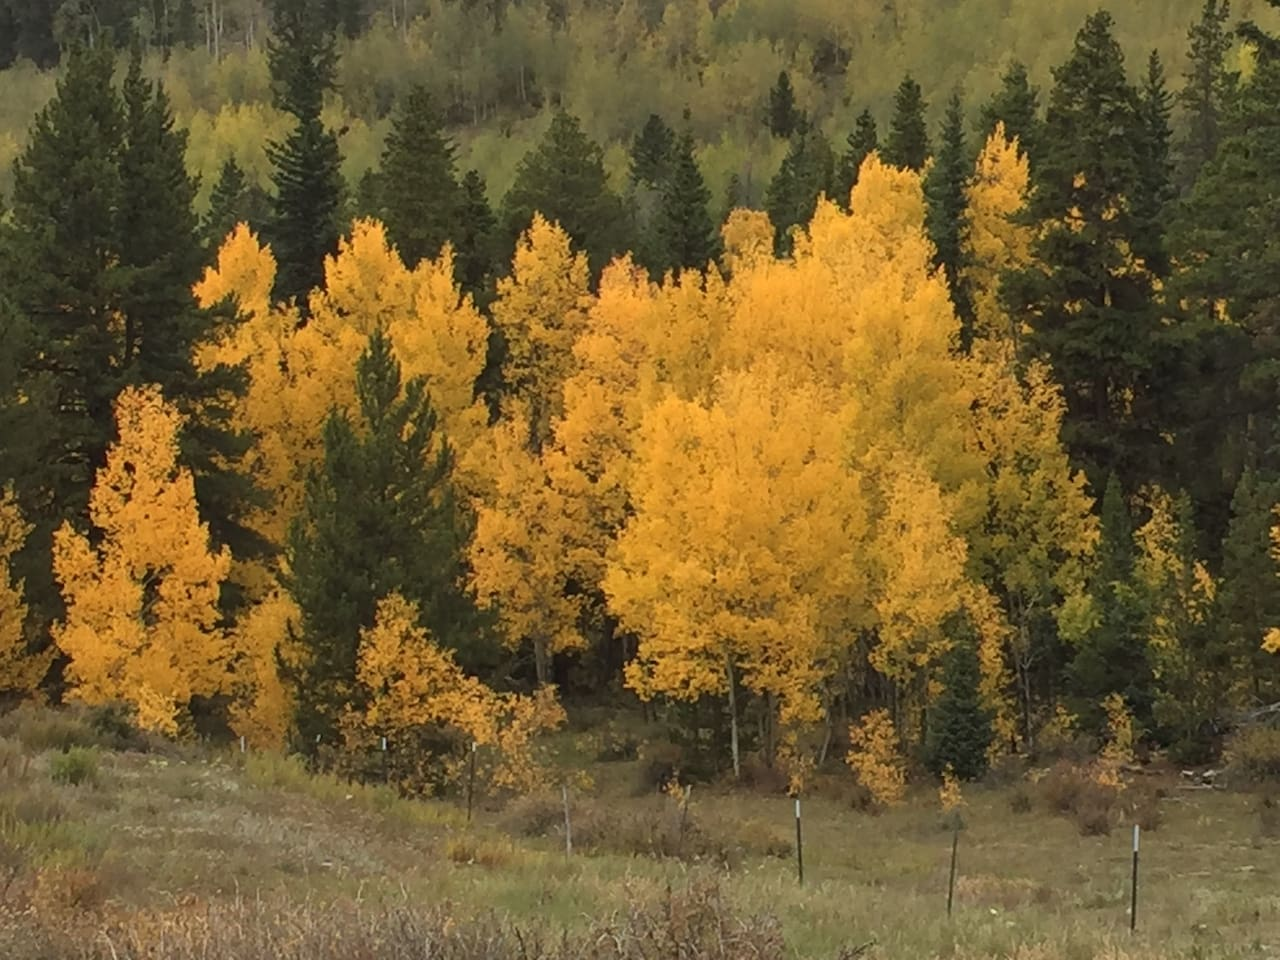 High Plains Outpost is surrounded by some of the most spectacular aspen trees in Colorado each fall. Lots of leaf-watching beauty within 15 miles.